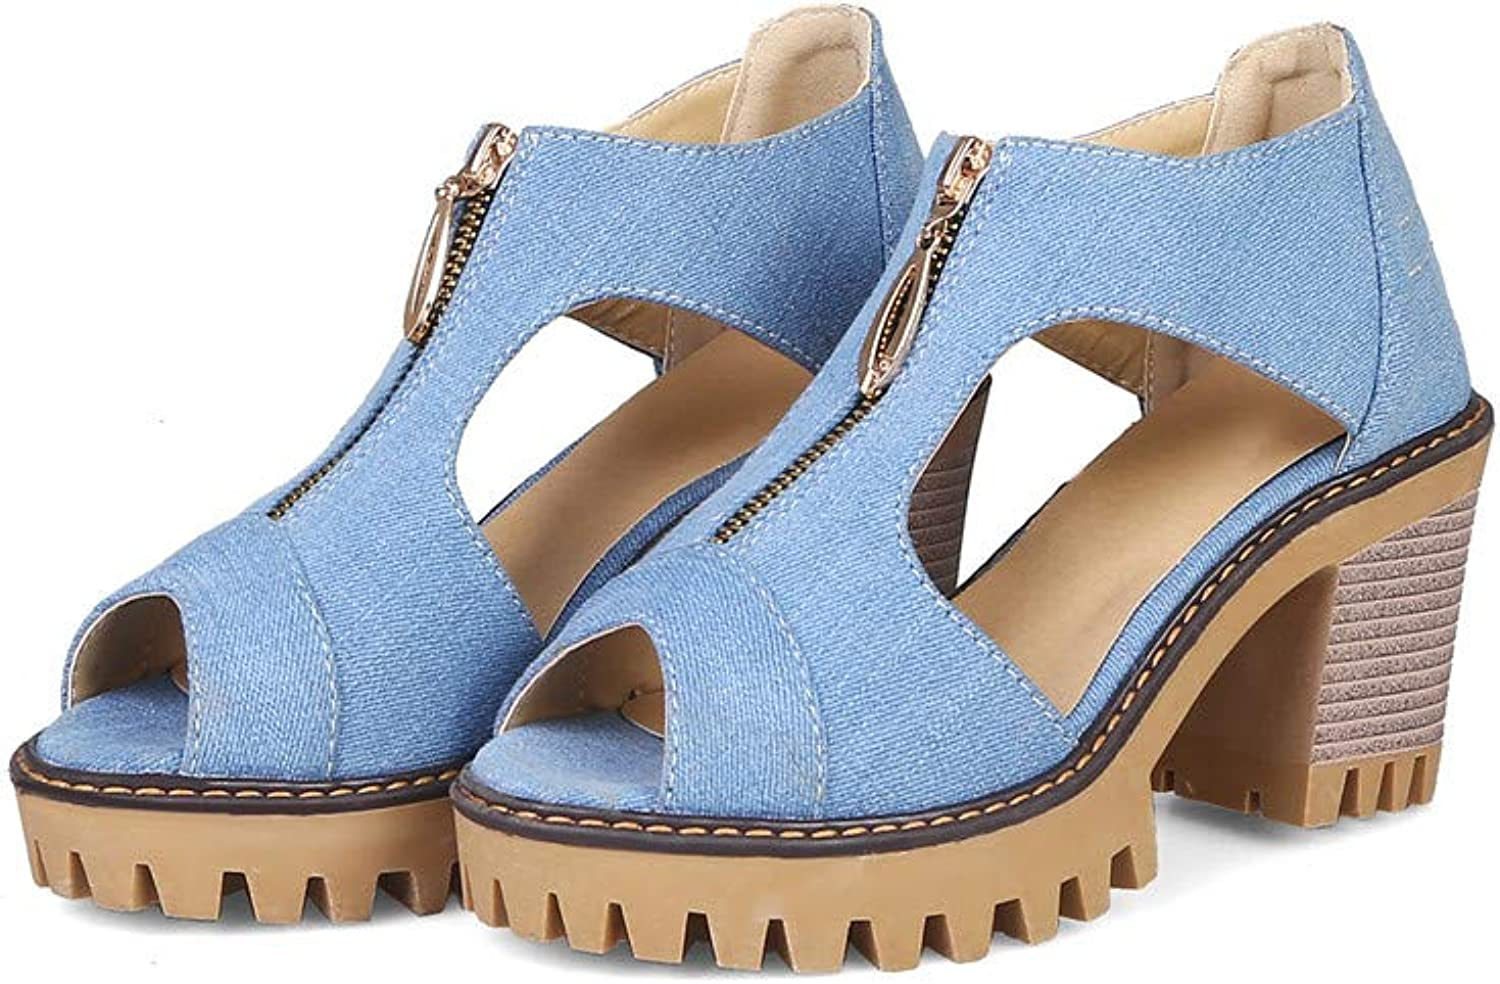 MFairy Chunky Heel Denim Sandals Peep Toe Casual Summer Heeled Sandals